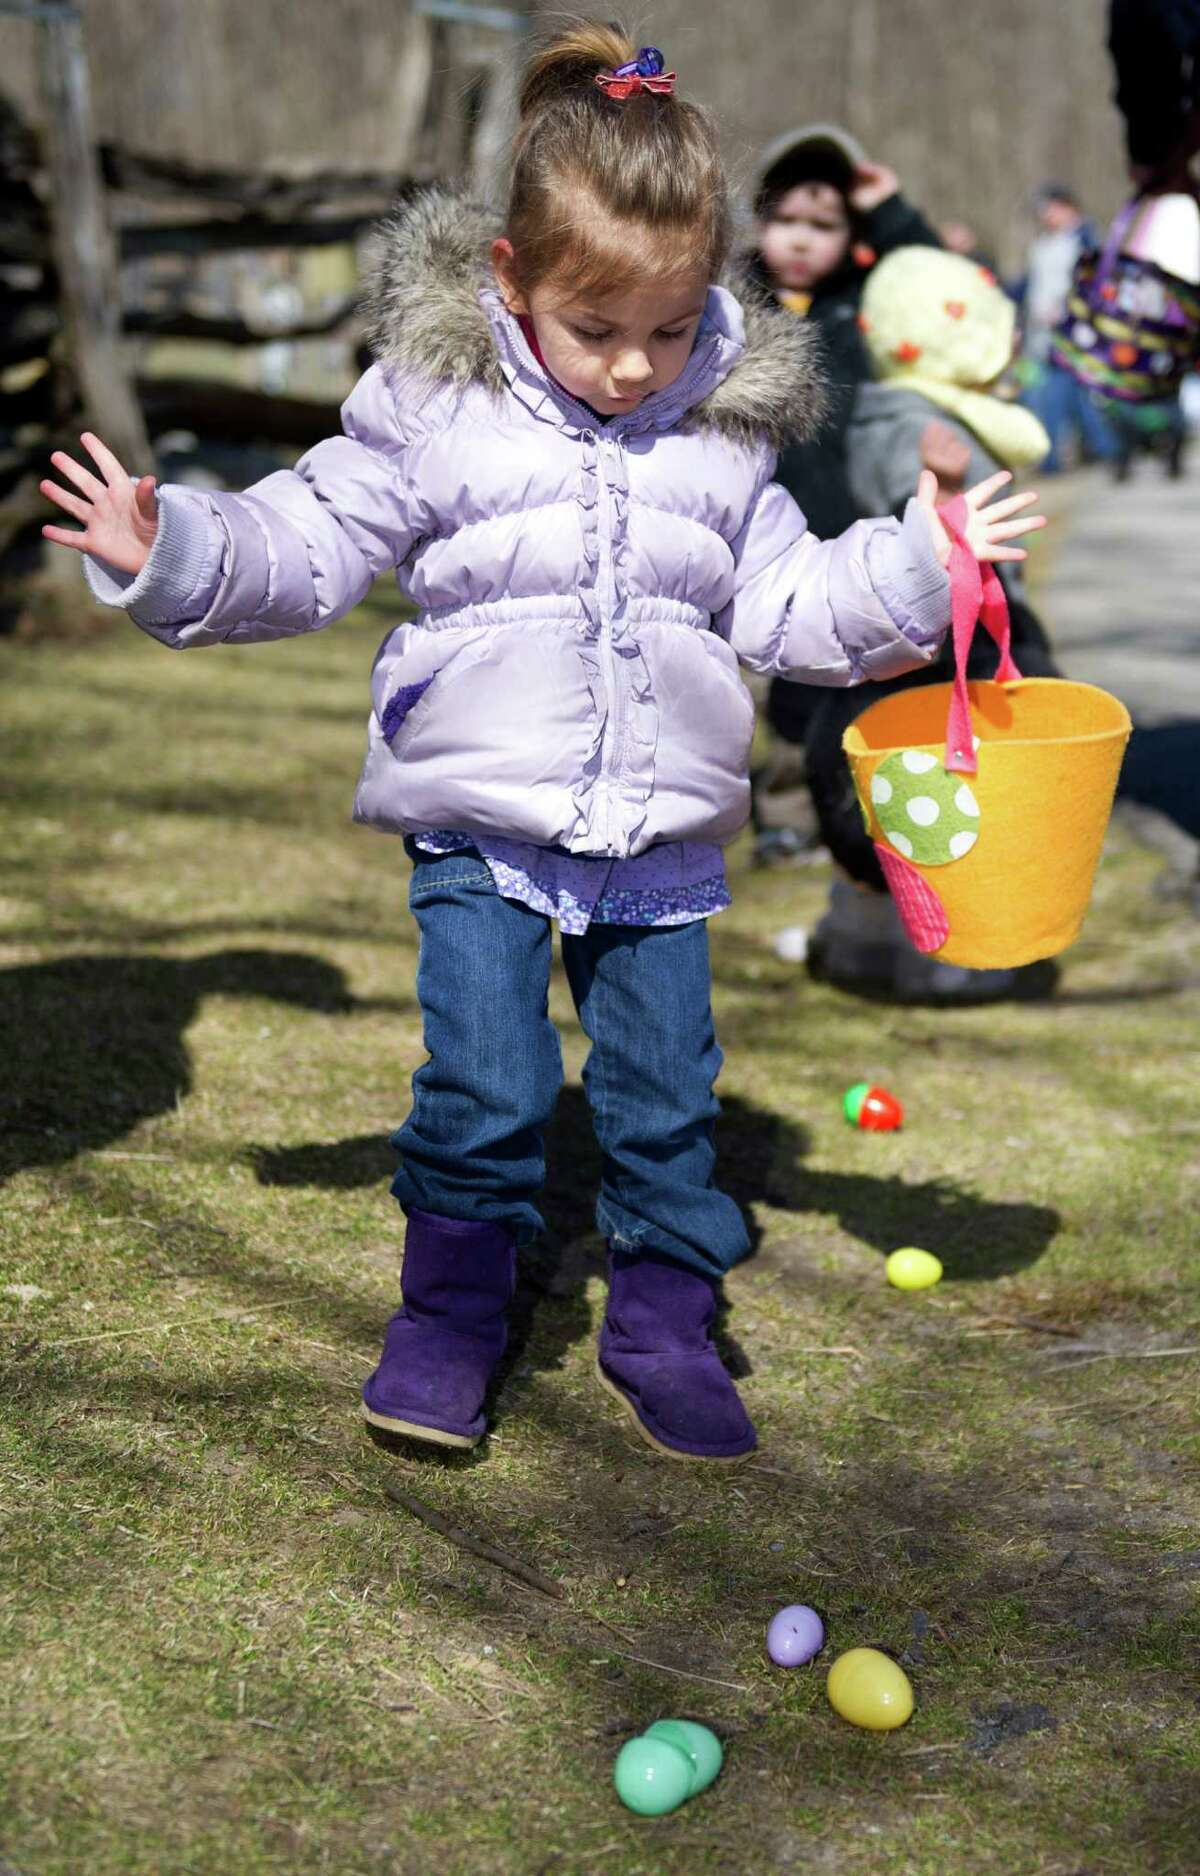 Children collect eggs during the 9th Annual Heckscher Farm Egg Hunt on Saturday, March 30, 2013.